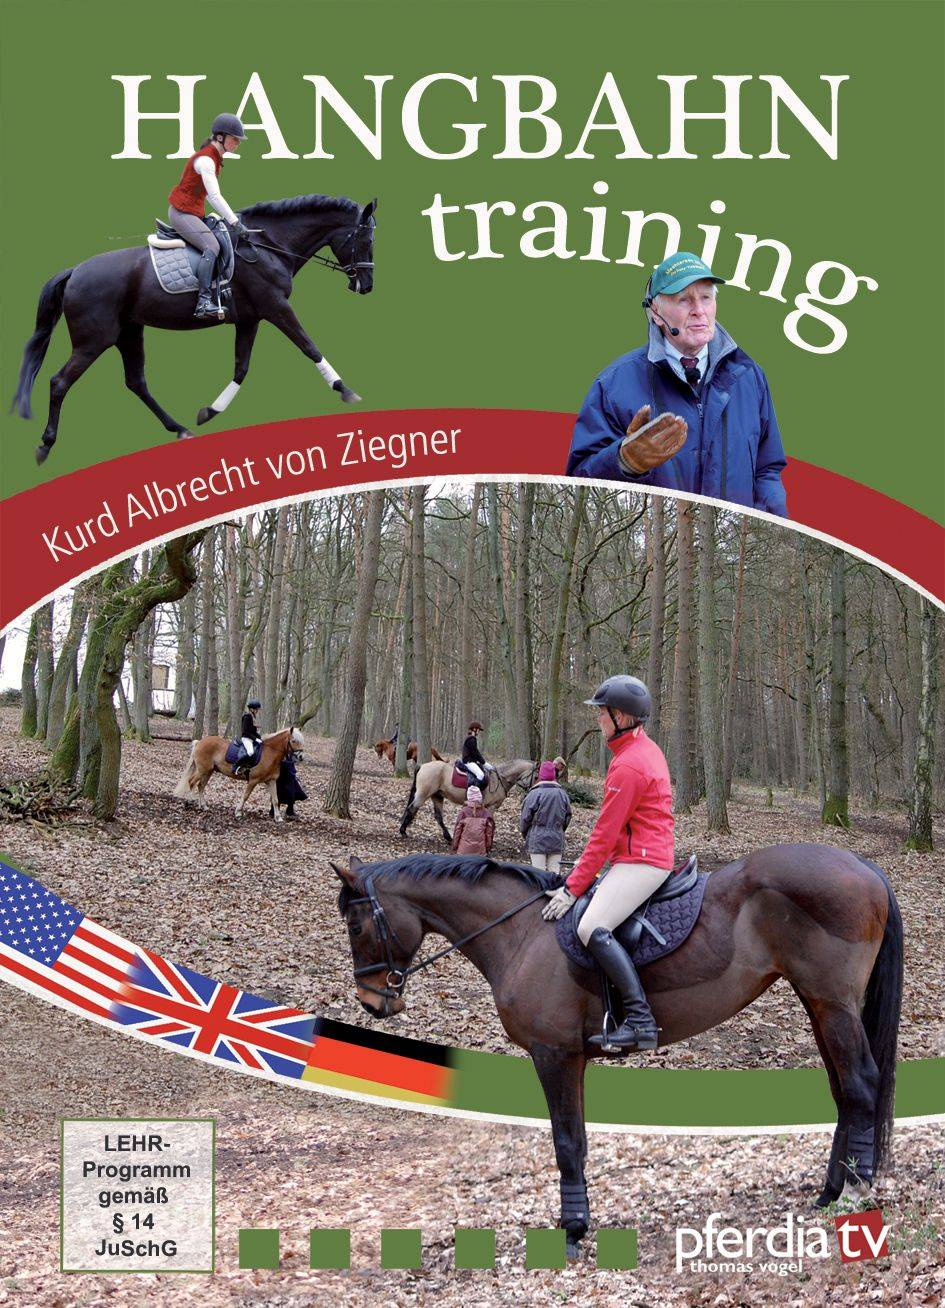 Hangbahn Training DVD with Kurt Albrecht von Ziegner